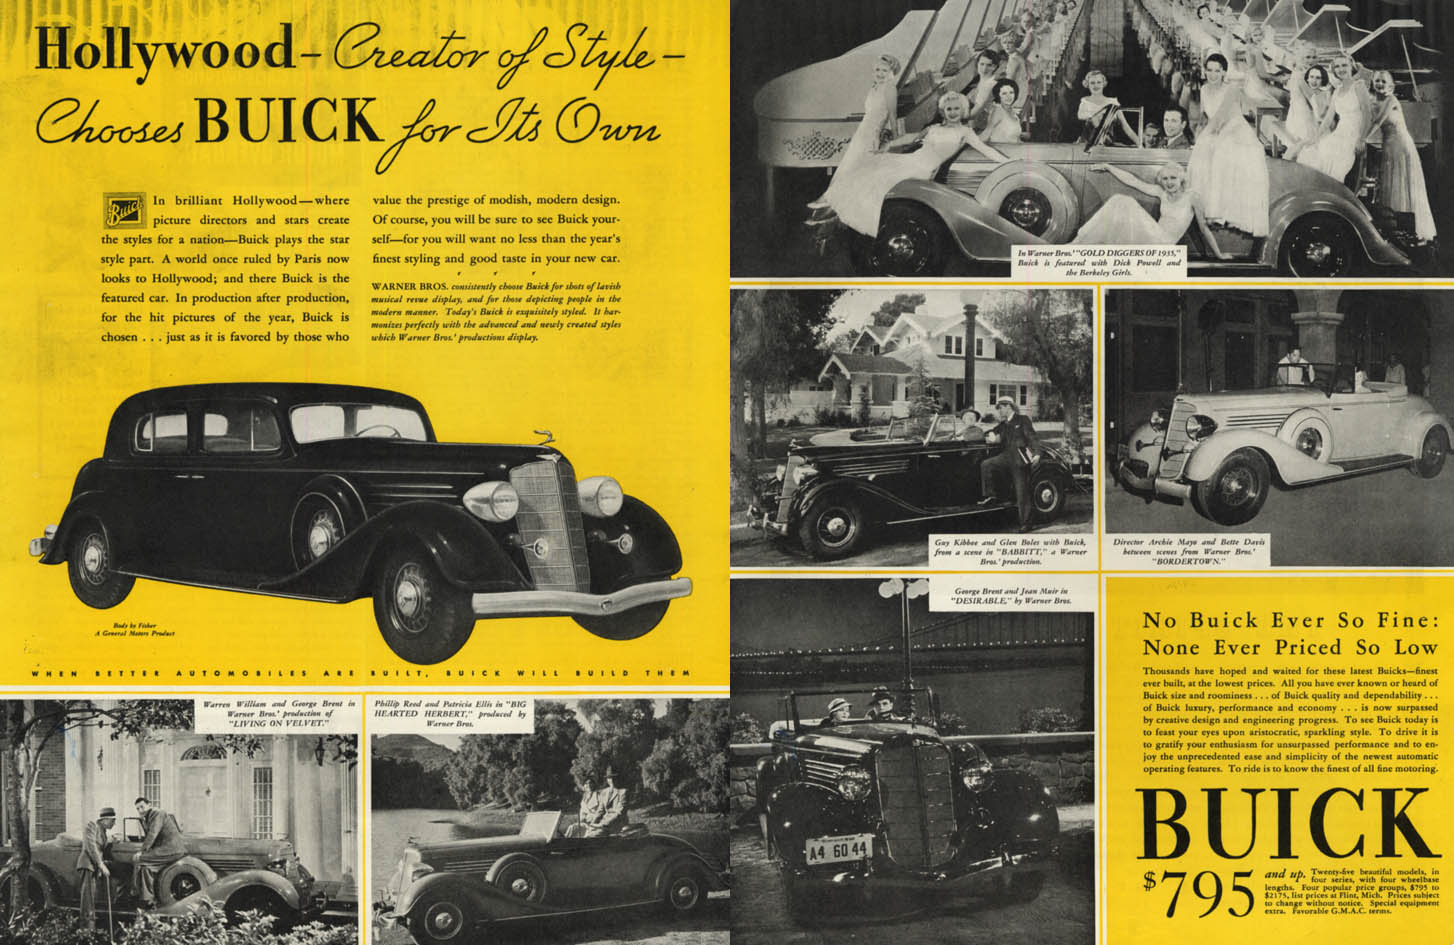 Image for Hollywood - Creator of Style - Chooses Buick for Its Own ad 1935 SEP